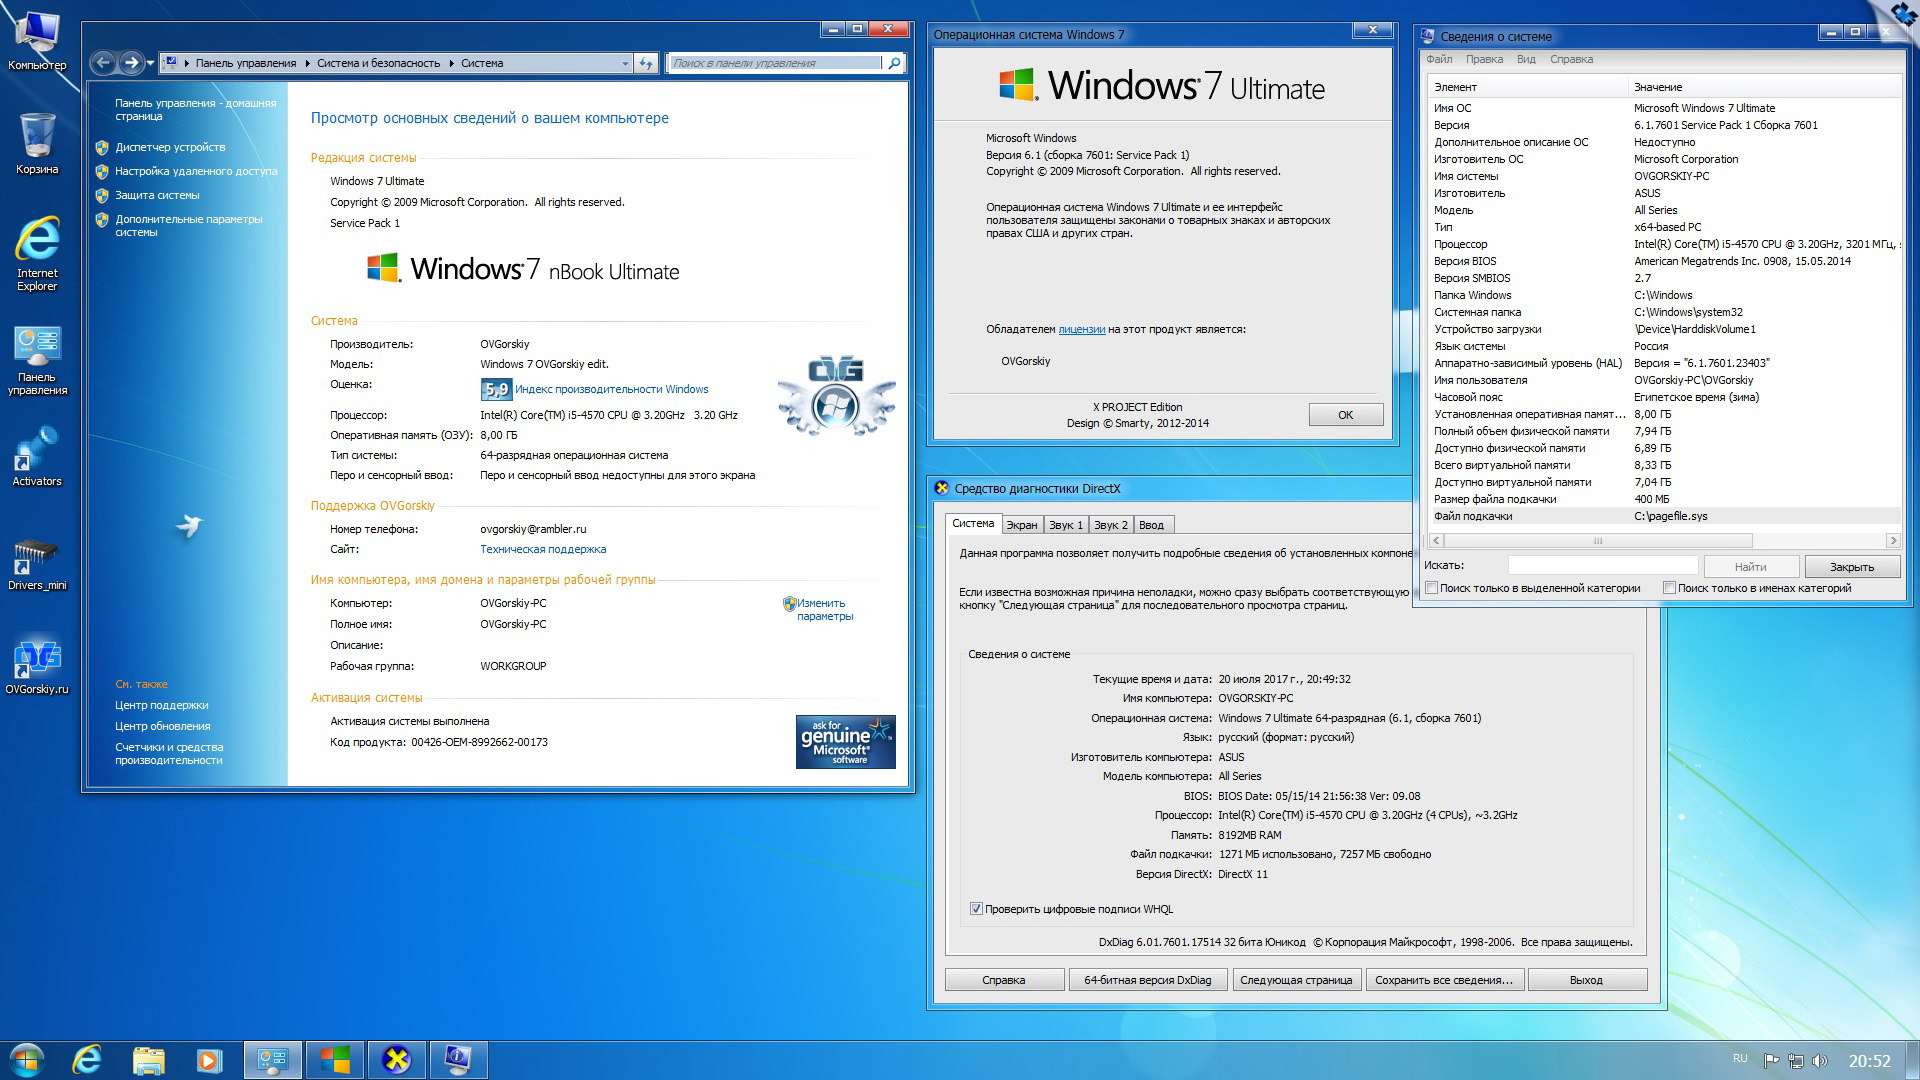 kms activator windows 7 ultimate free download